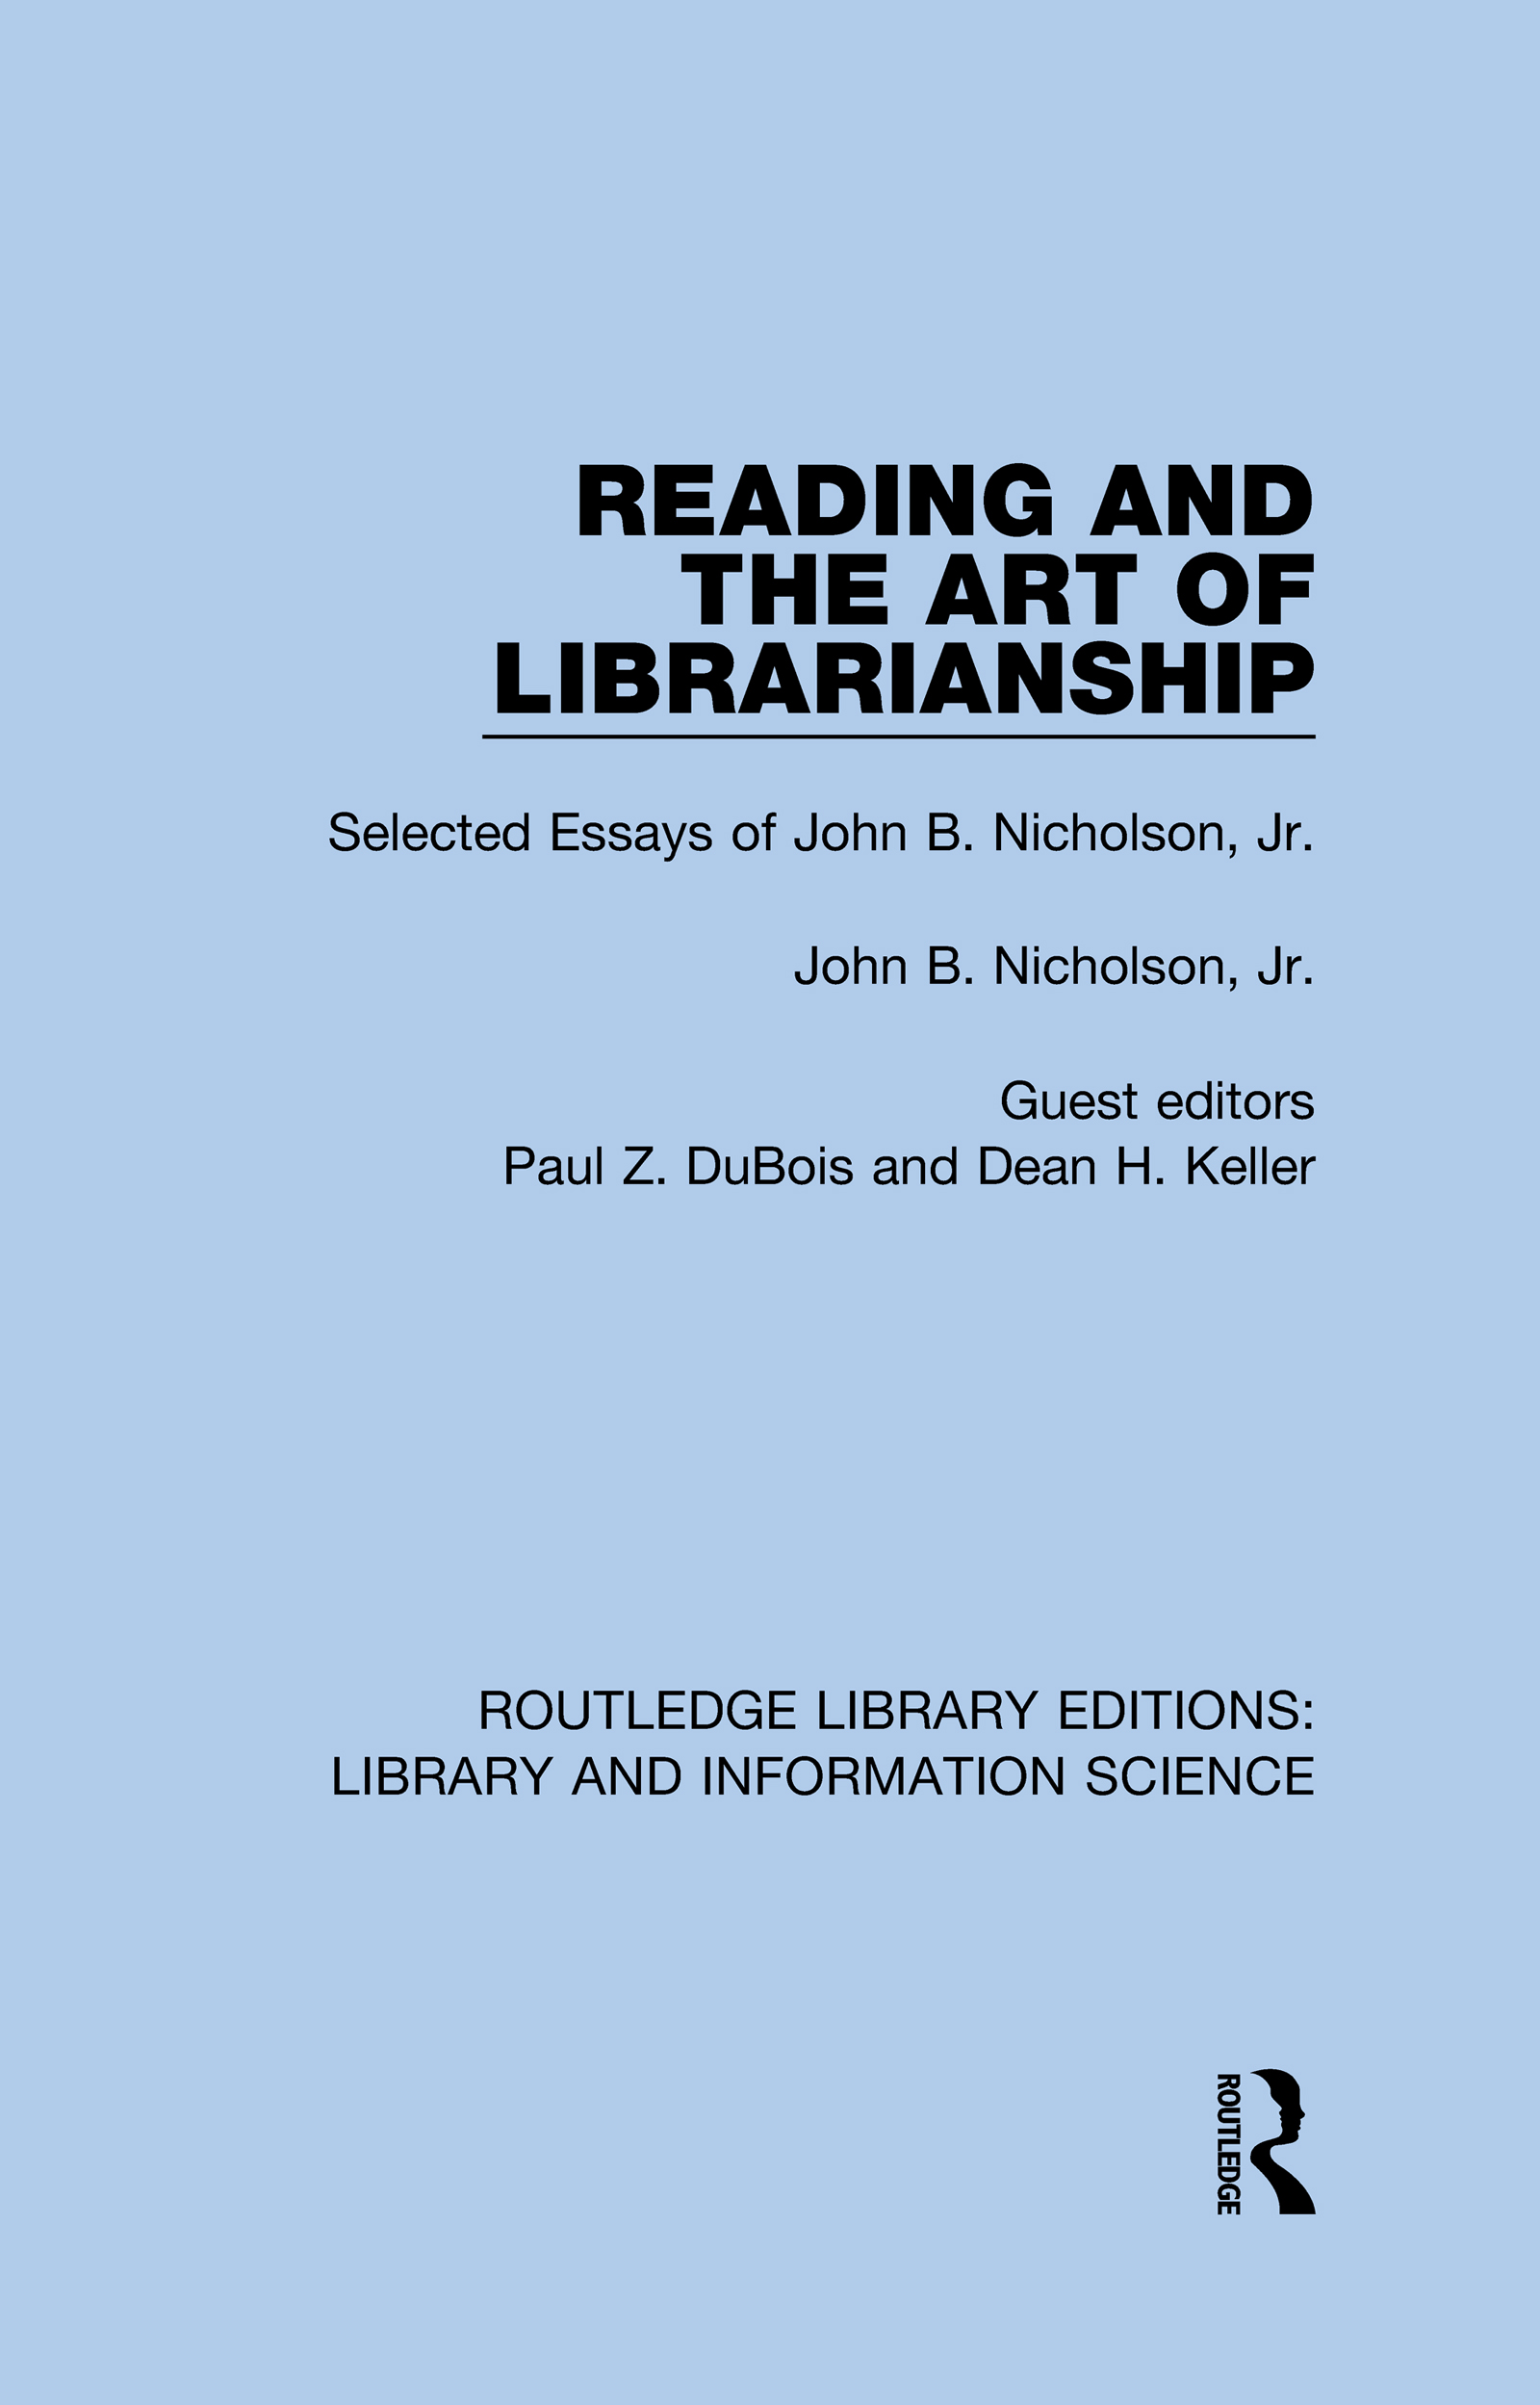 Reading and the Art of Librarianship